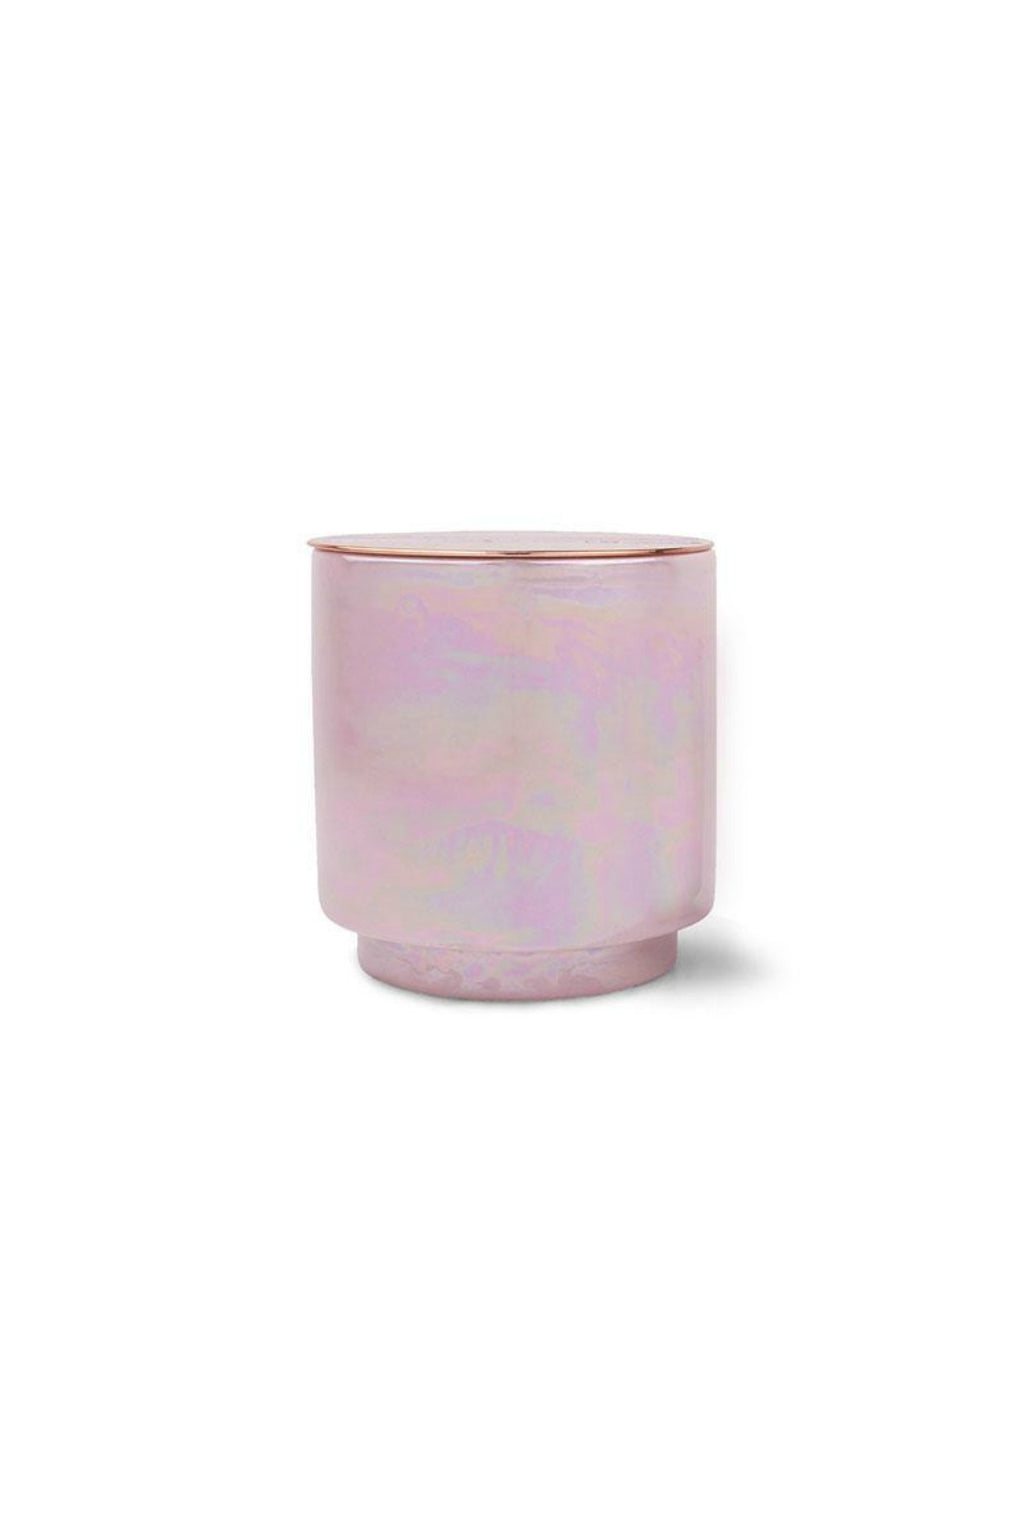 Paddywax Peony & Lavender Glow Candle